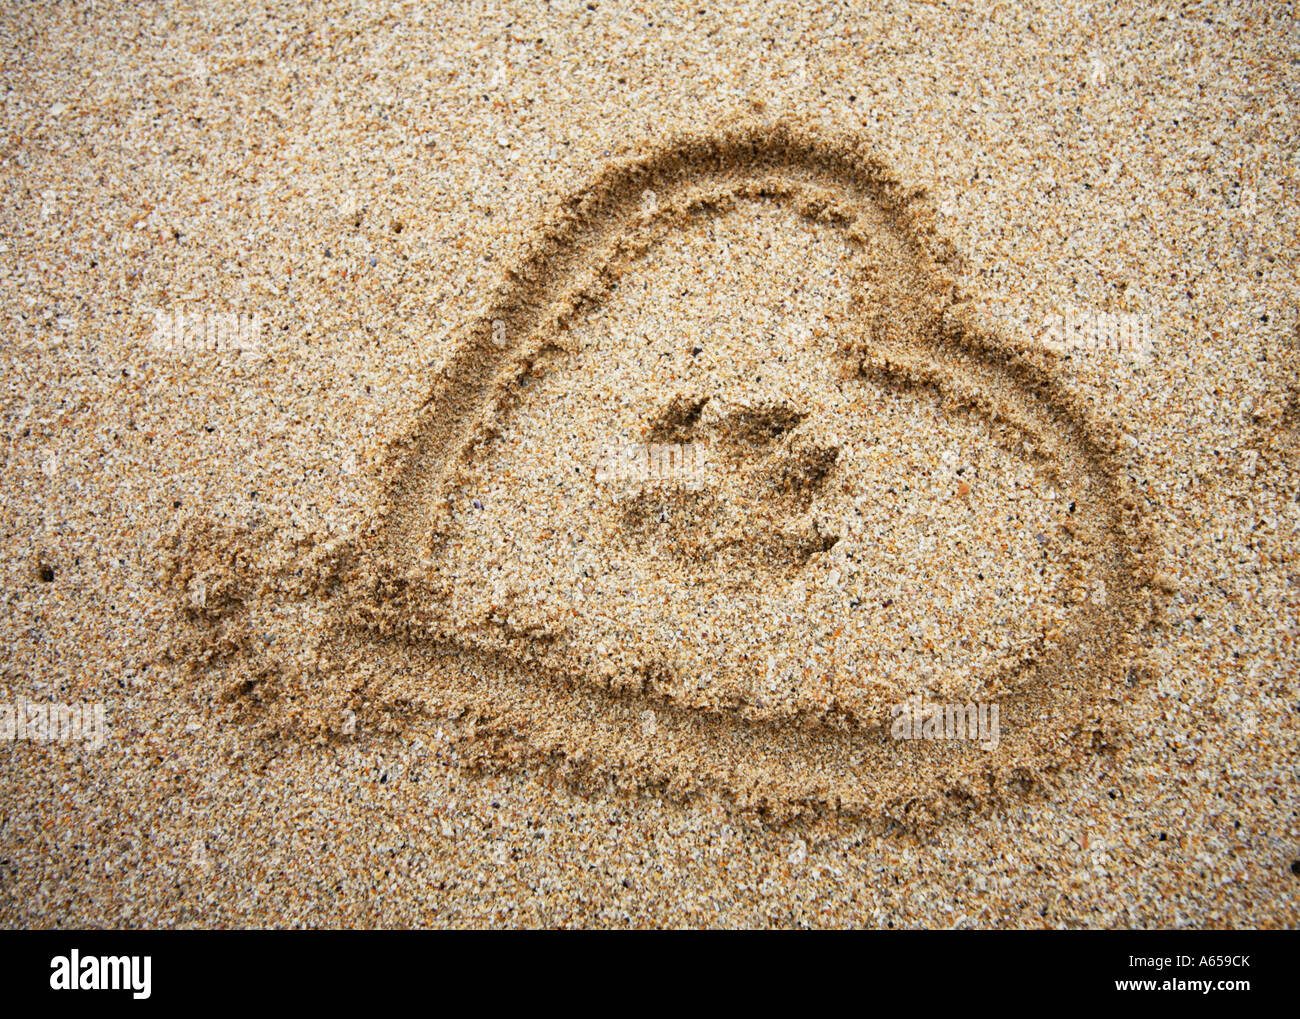 Dog's Paw Print With Heart in Sand - Stock Image